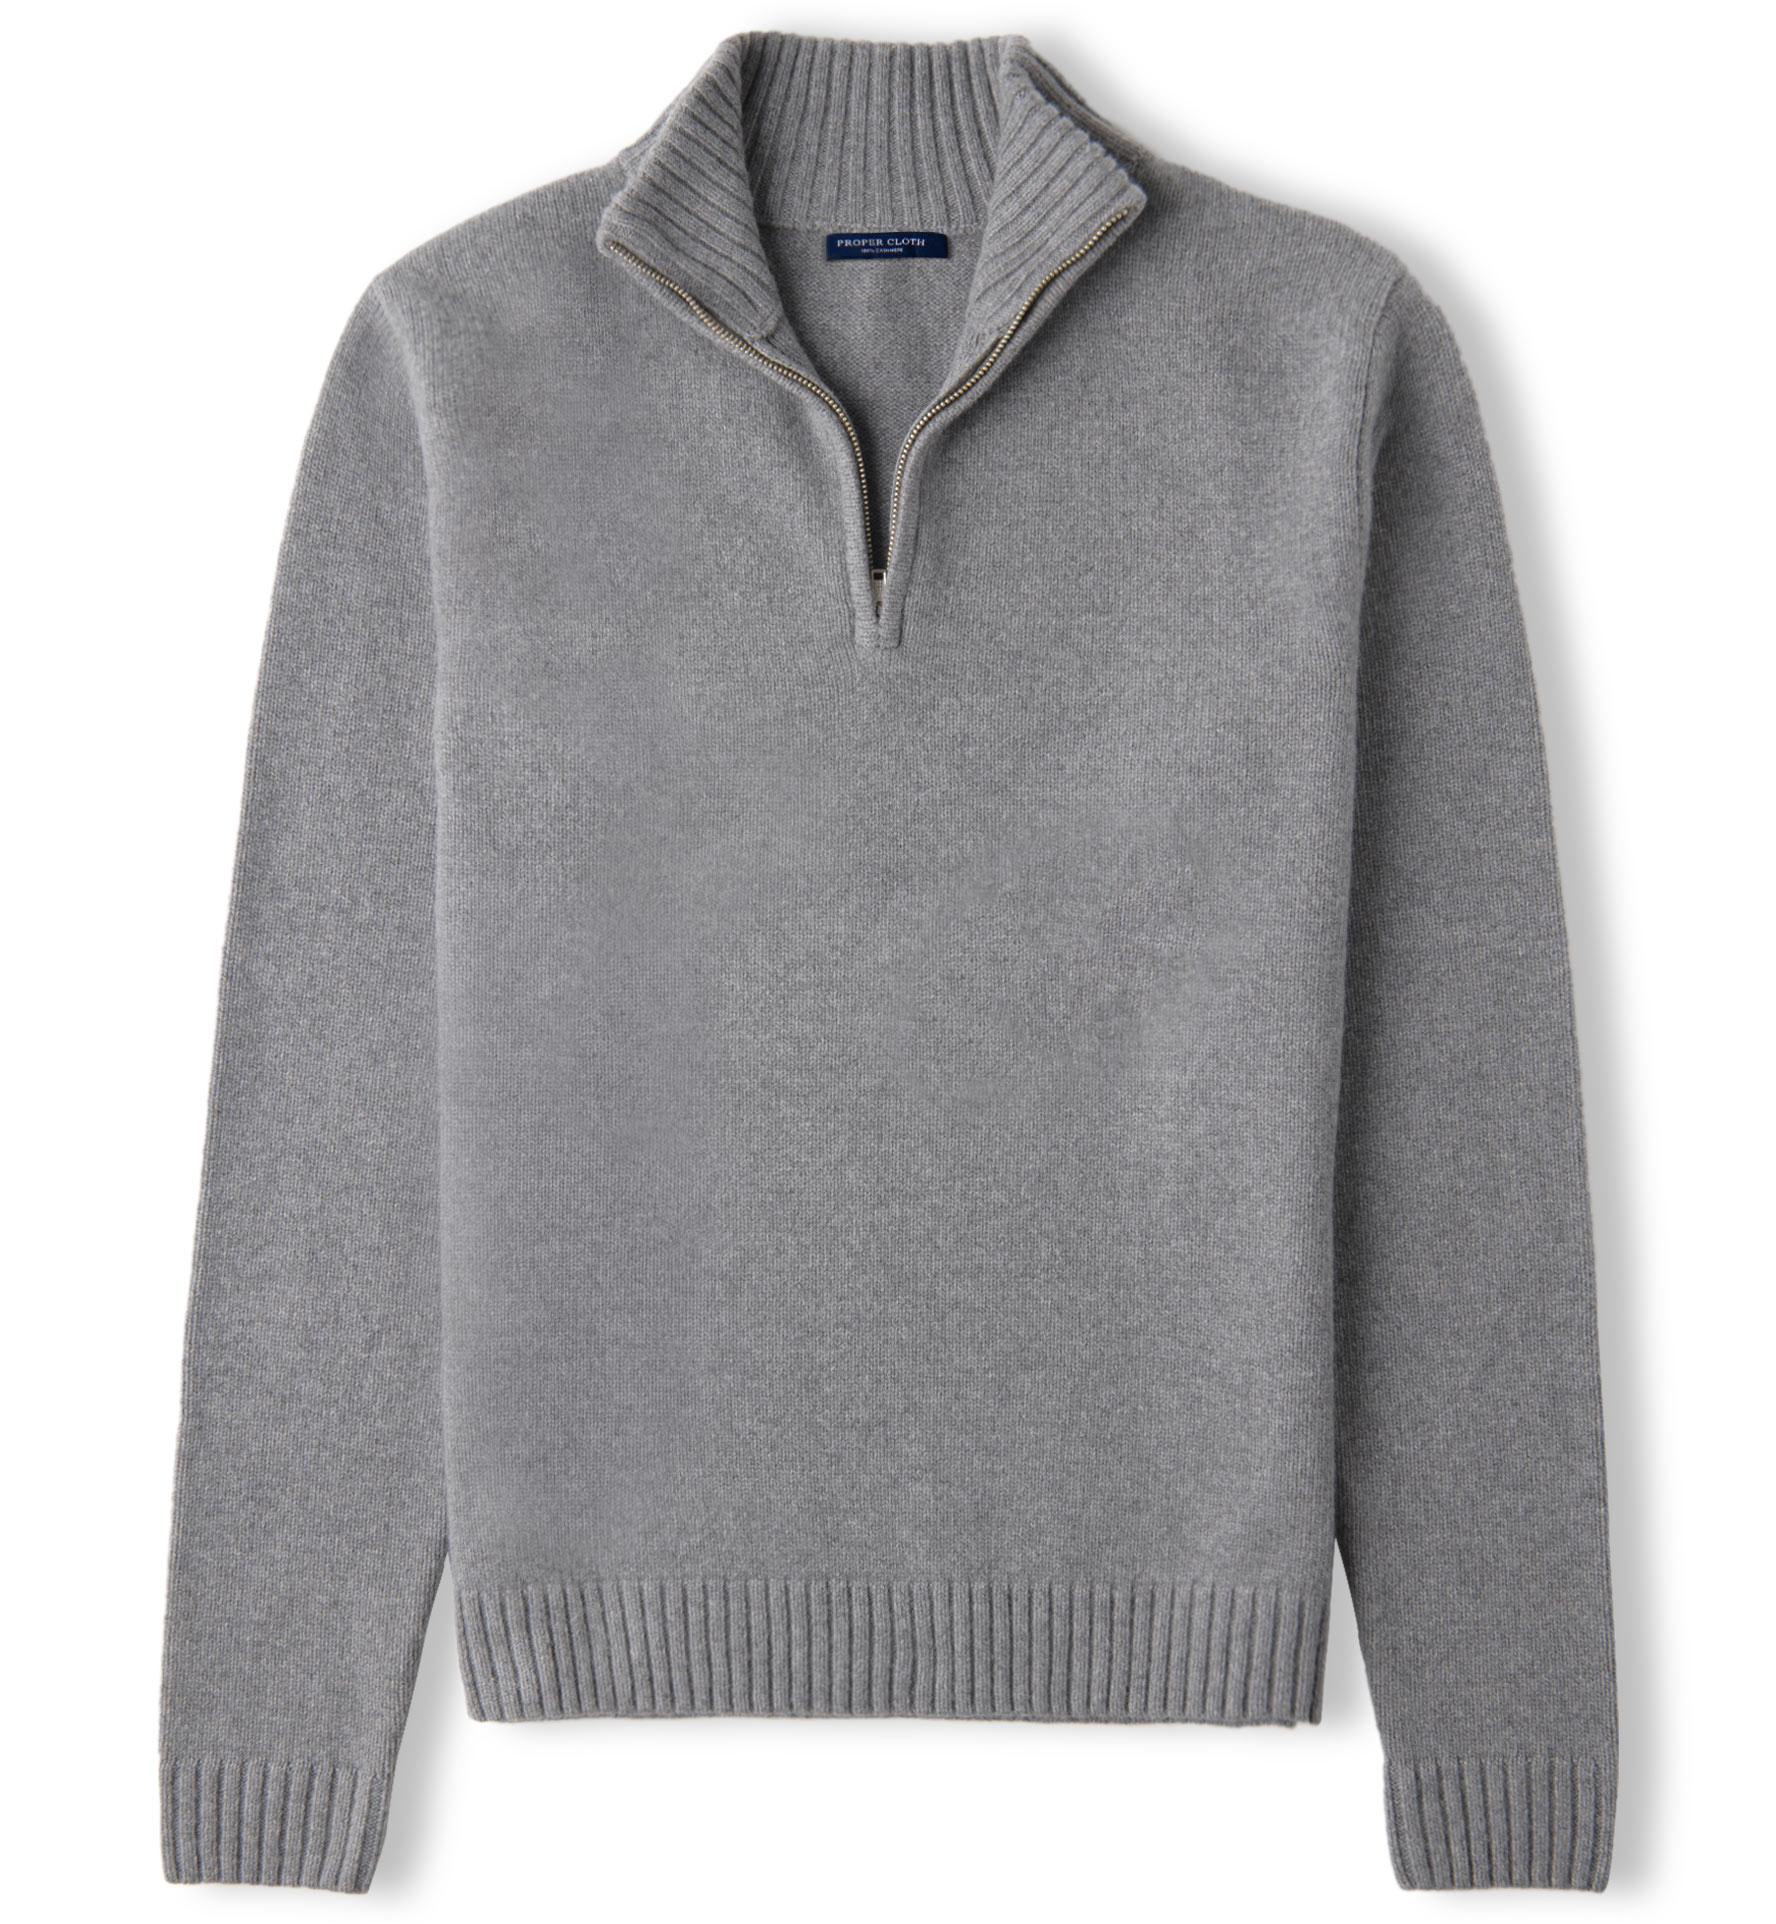 Zoom Image of Grey Wool and Cashmere Half-Zip Sweater